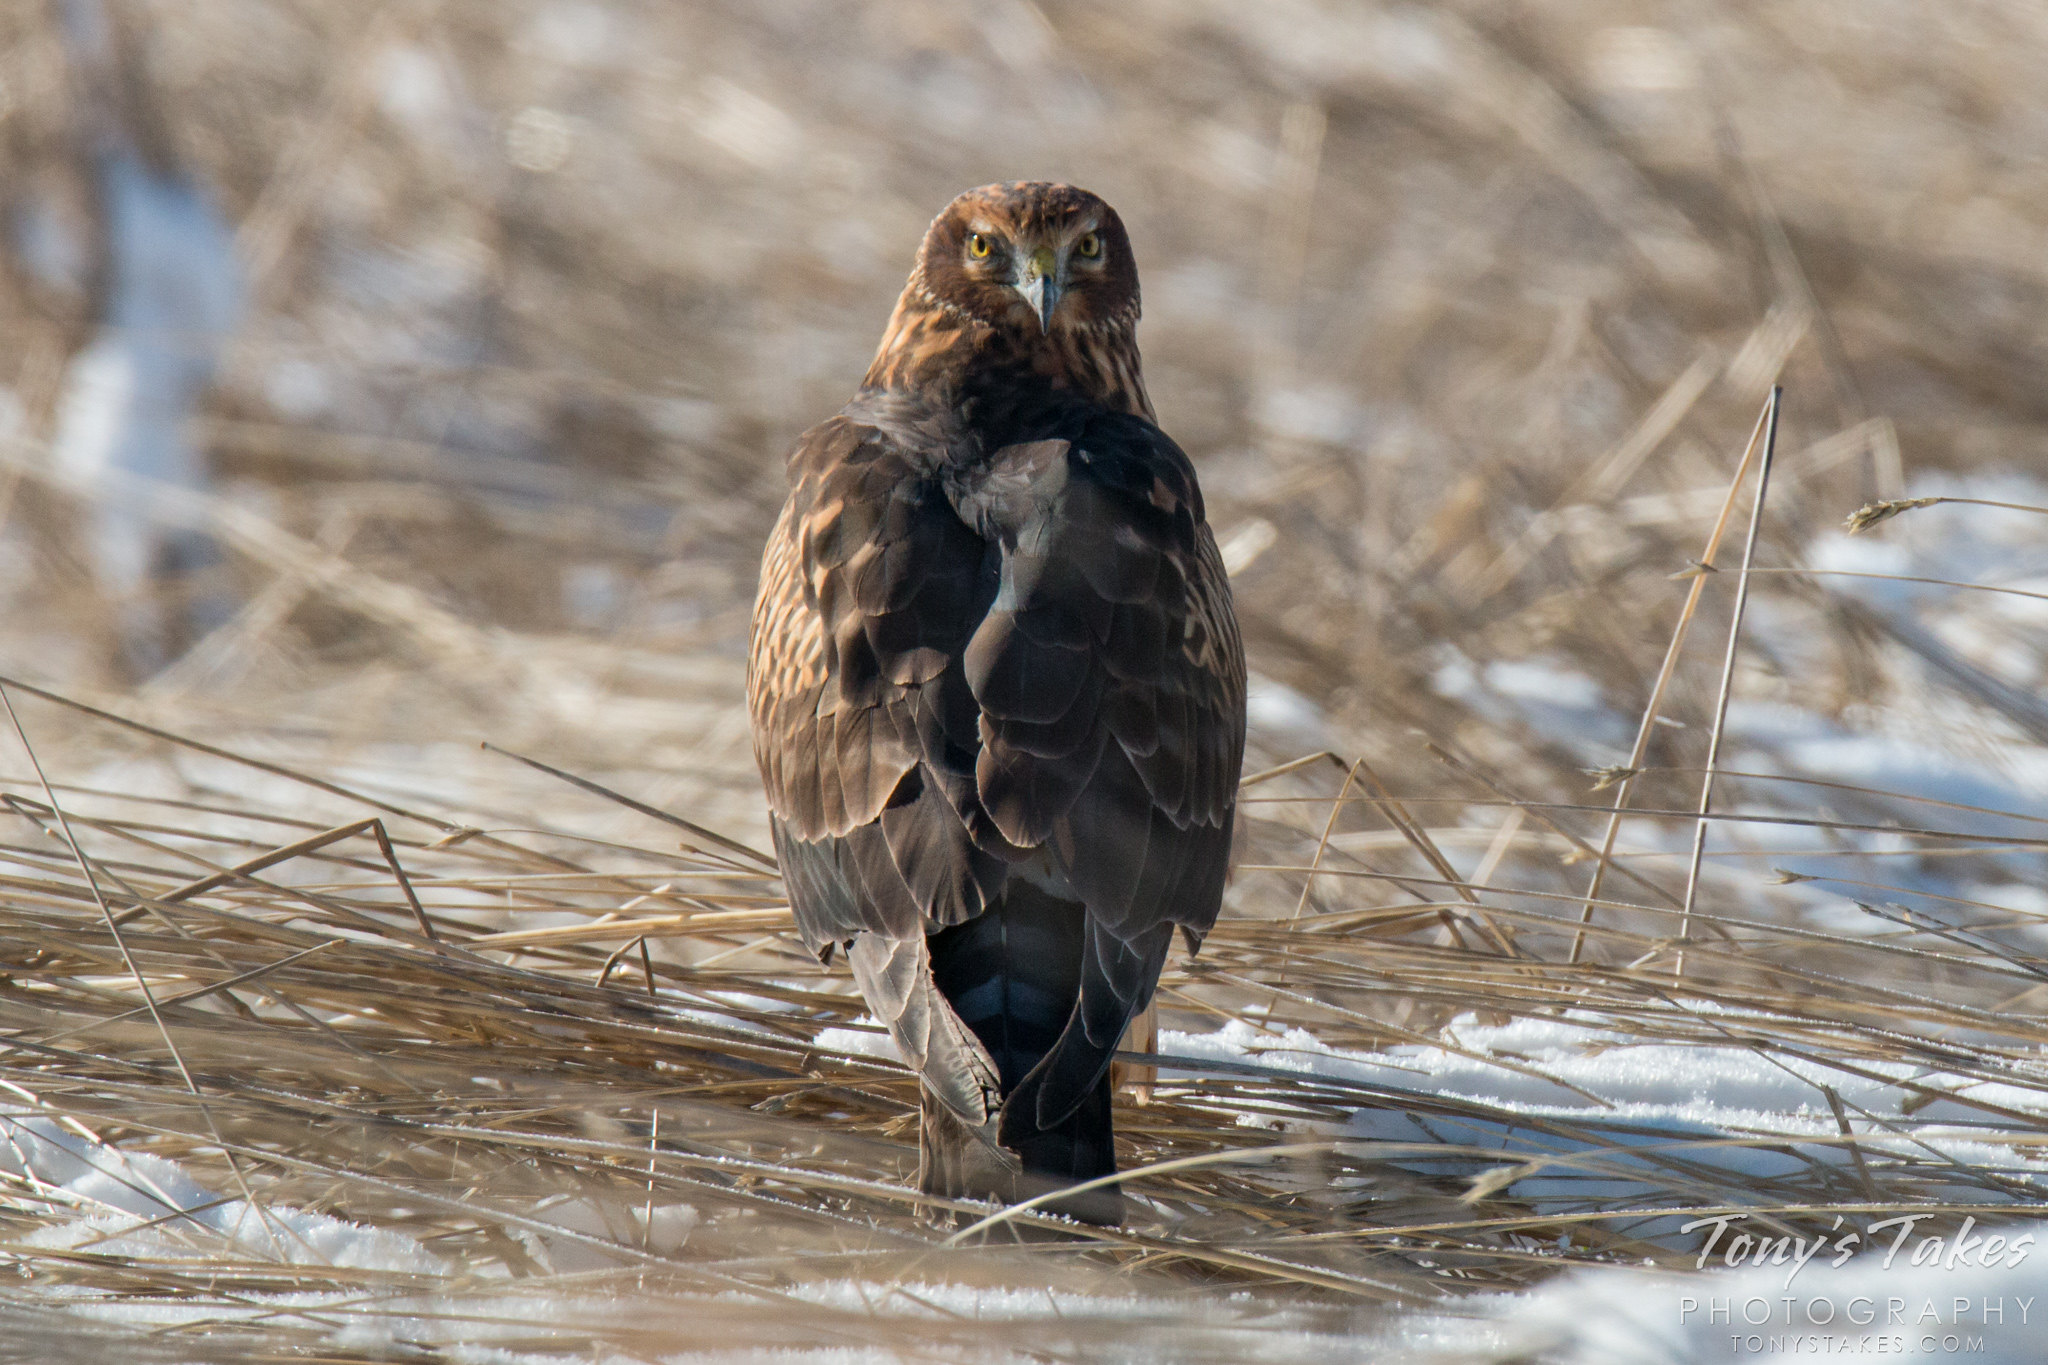 A female Northern Harrier keeps close watch while resting in some grass. (© Tony's Takes)